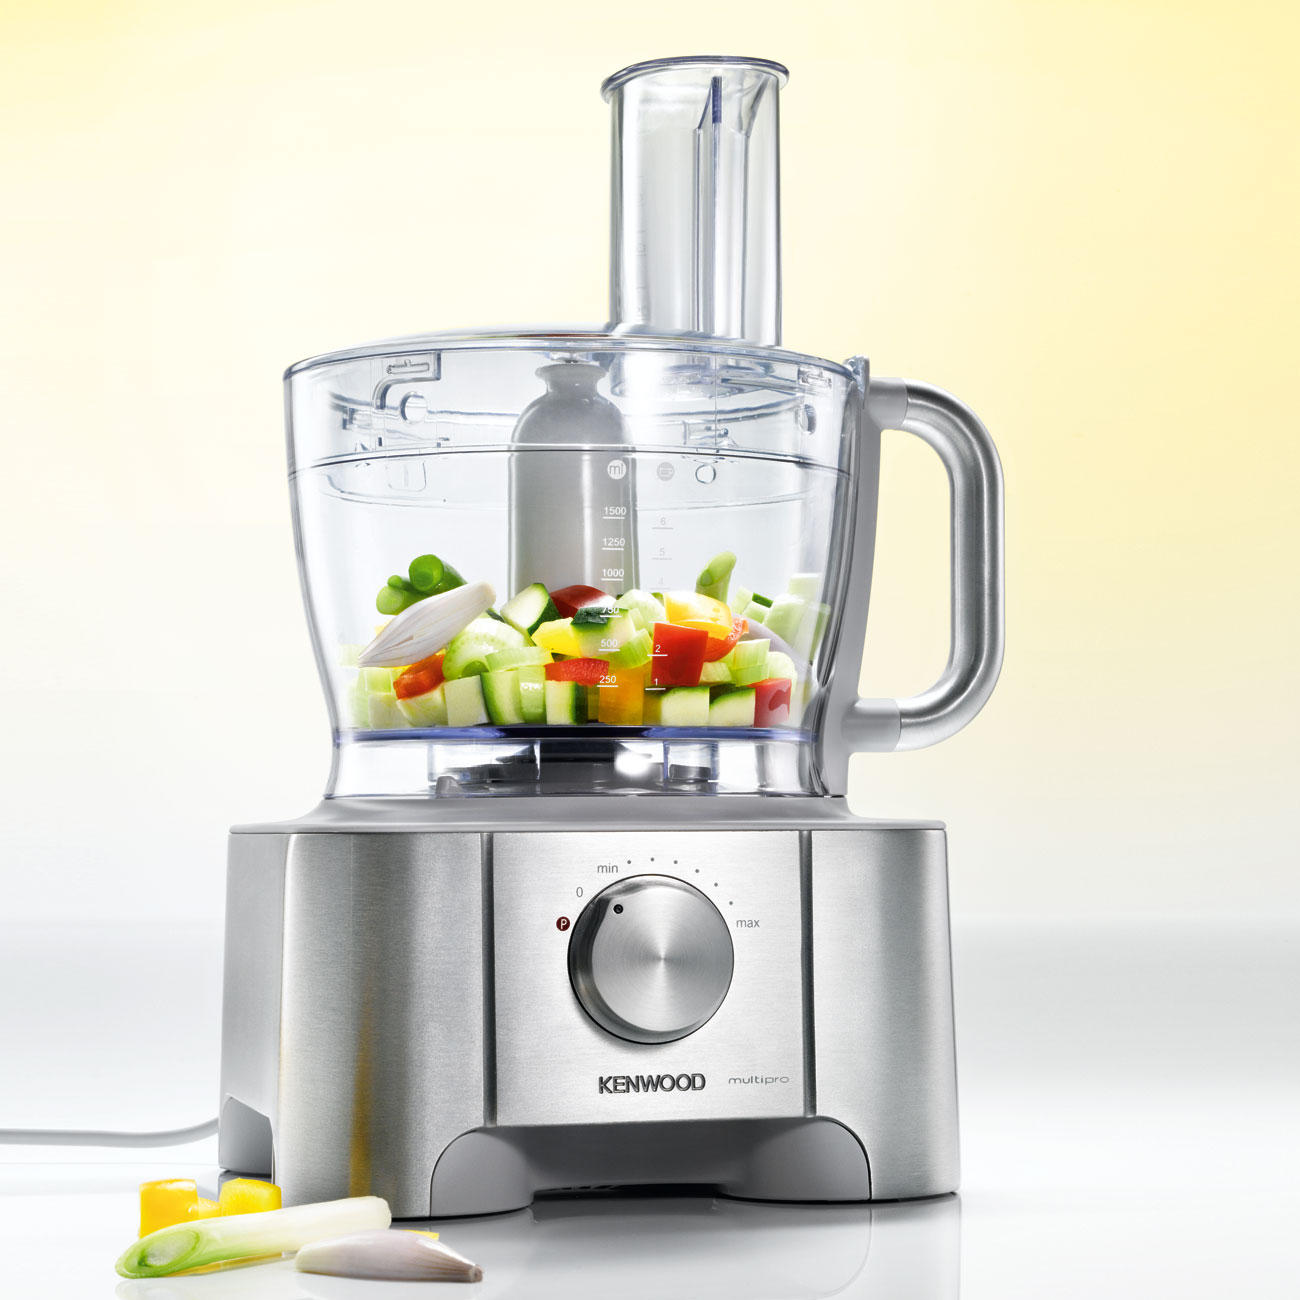 Kenwood Food Processor Compact 301 Moved Permanently